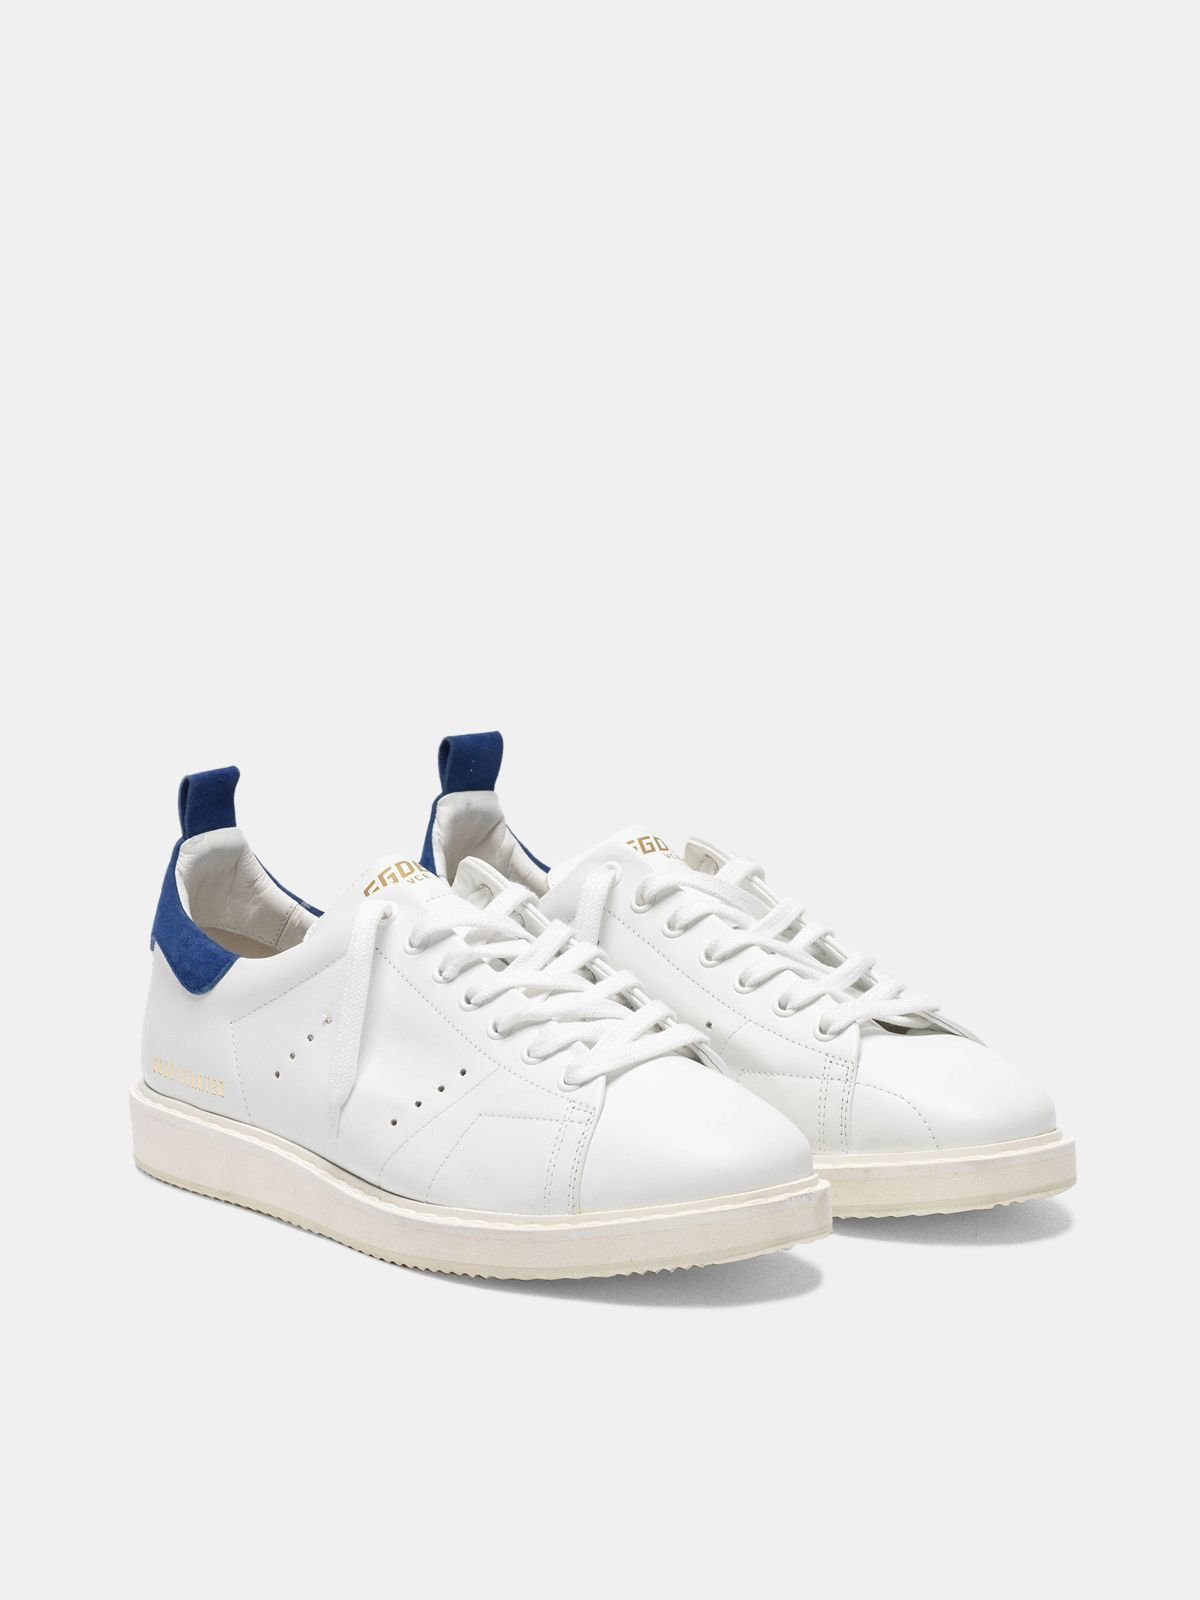 Golden Goose - Starter sneakers in leather with suede heel tab in